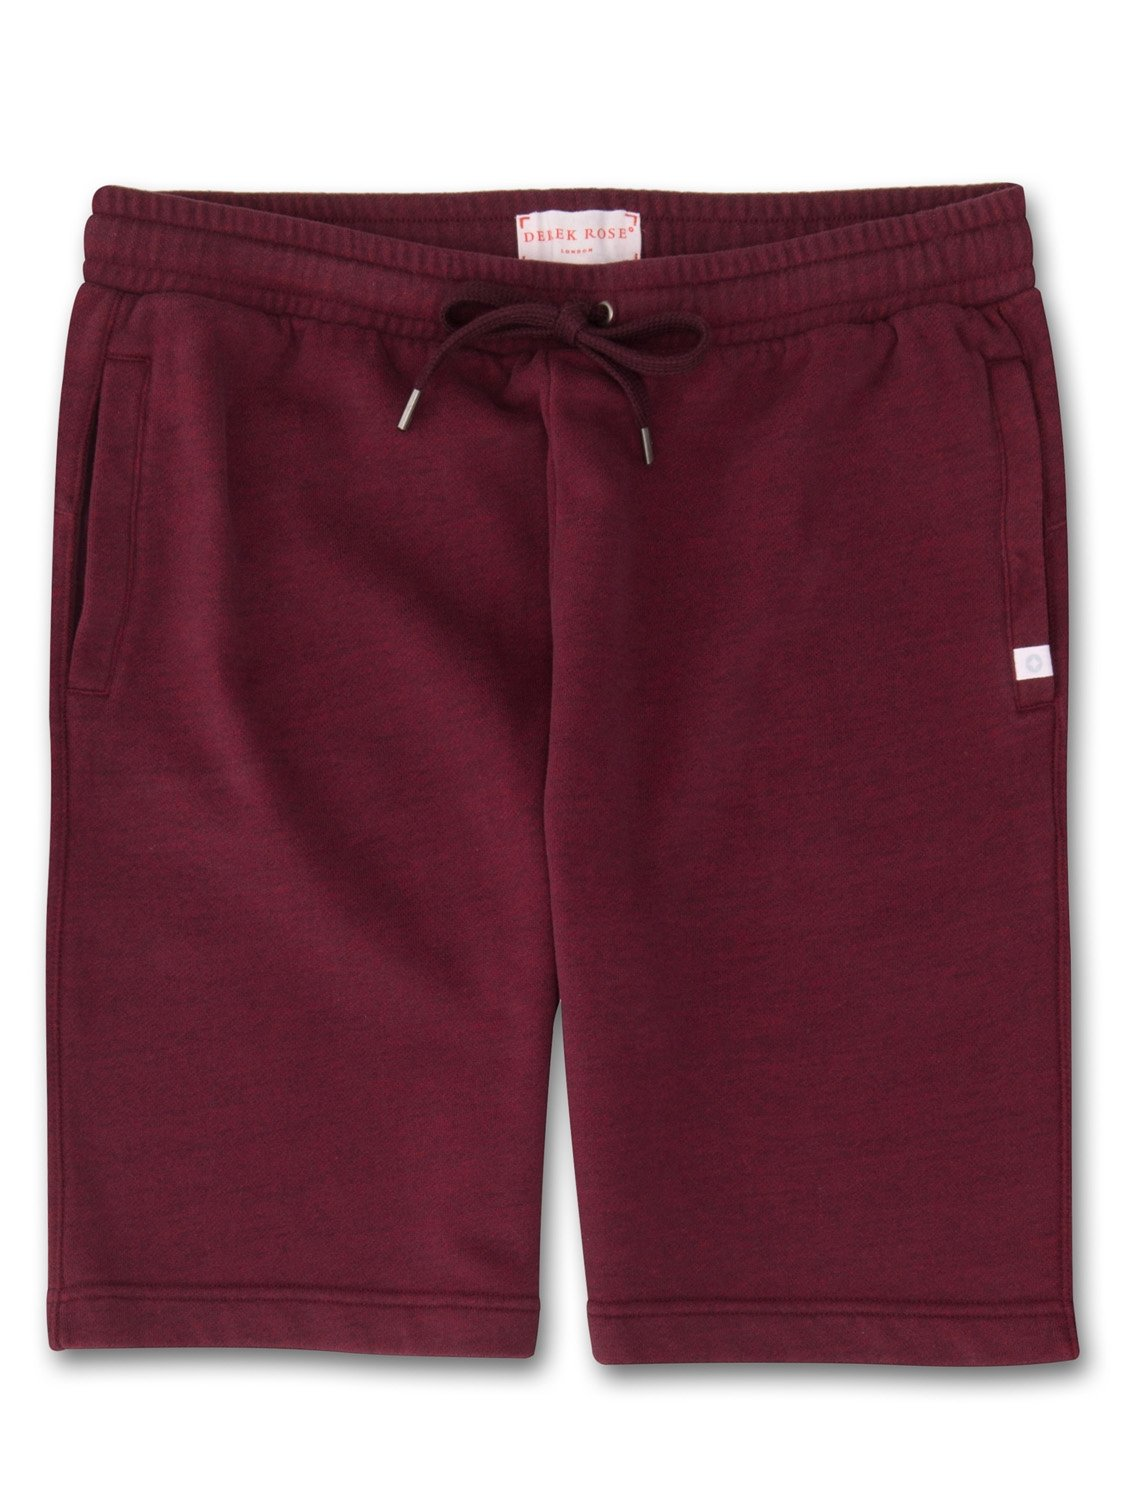 Men's Sweat Shorts Devon Loopback Cotton Burgundy